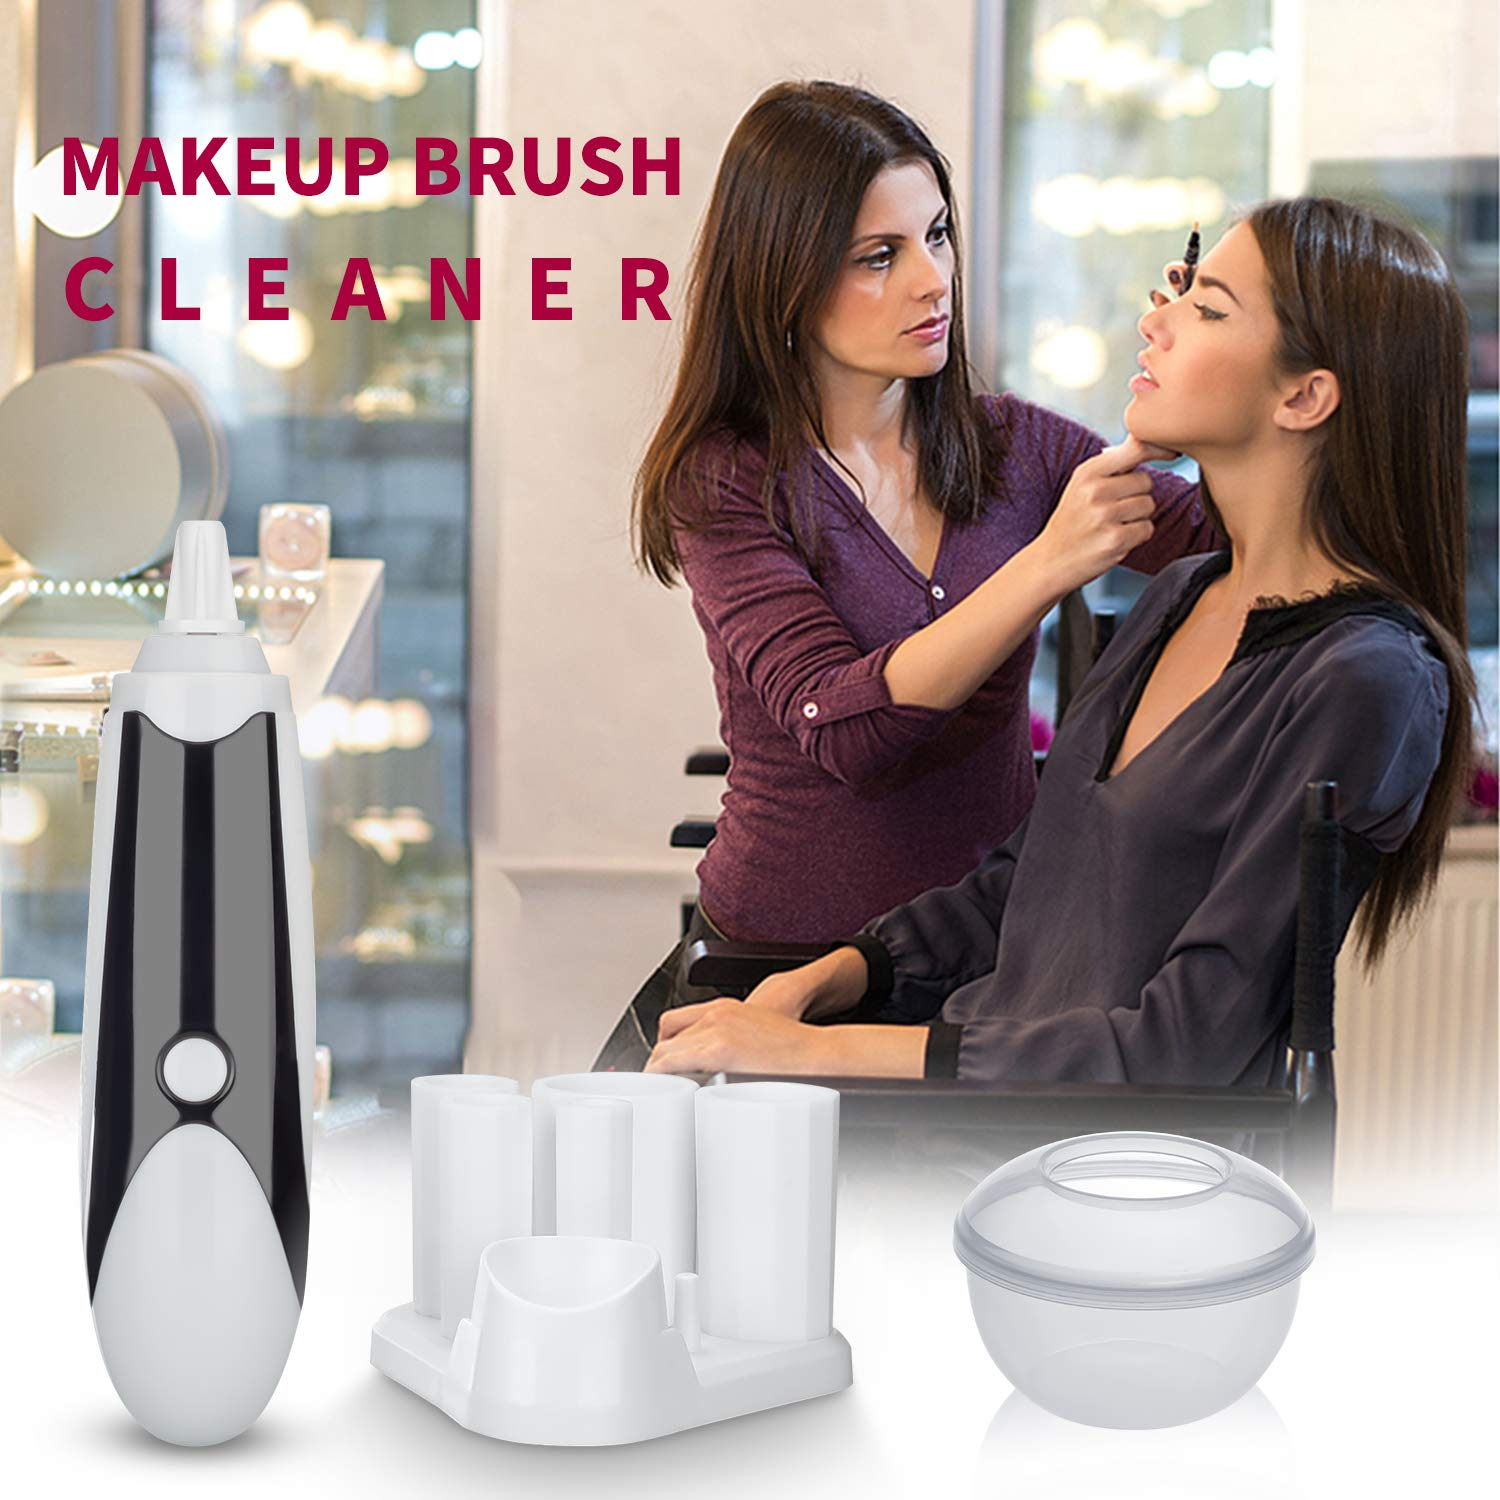 Makeup Brush Cleaner, WLWQ Rechargeable Professional Makeup Brush Cleaner and Dryer Machine, Electronic Automatic Brushes Cleaner with 360 Rotation Clean & Dry in Seconds